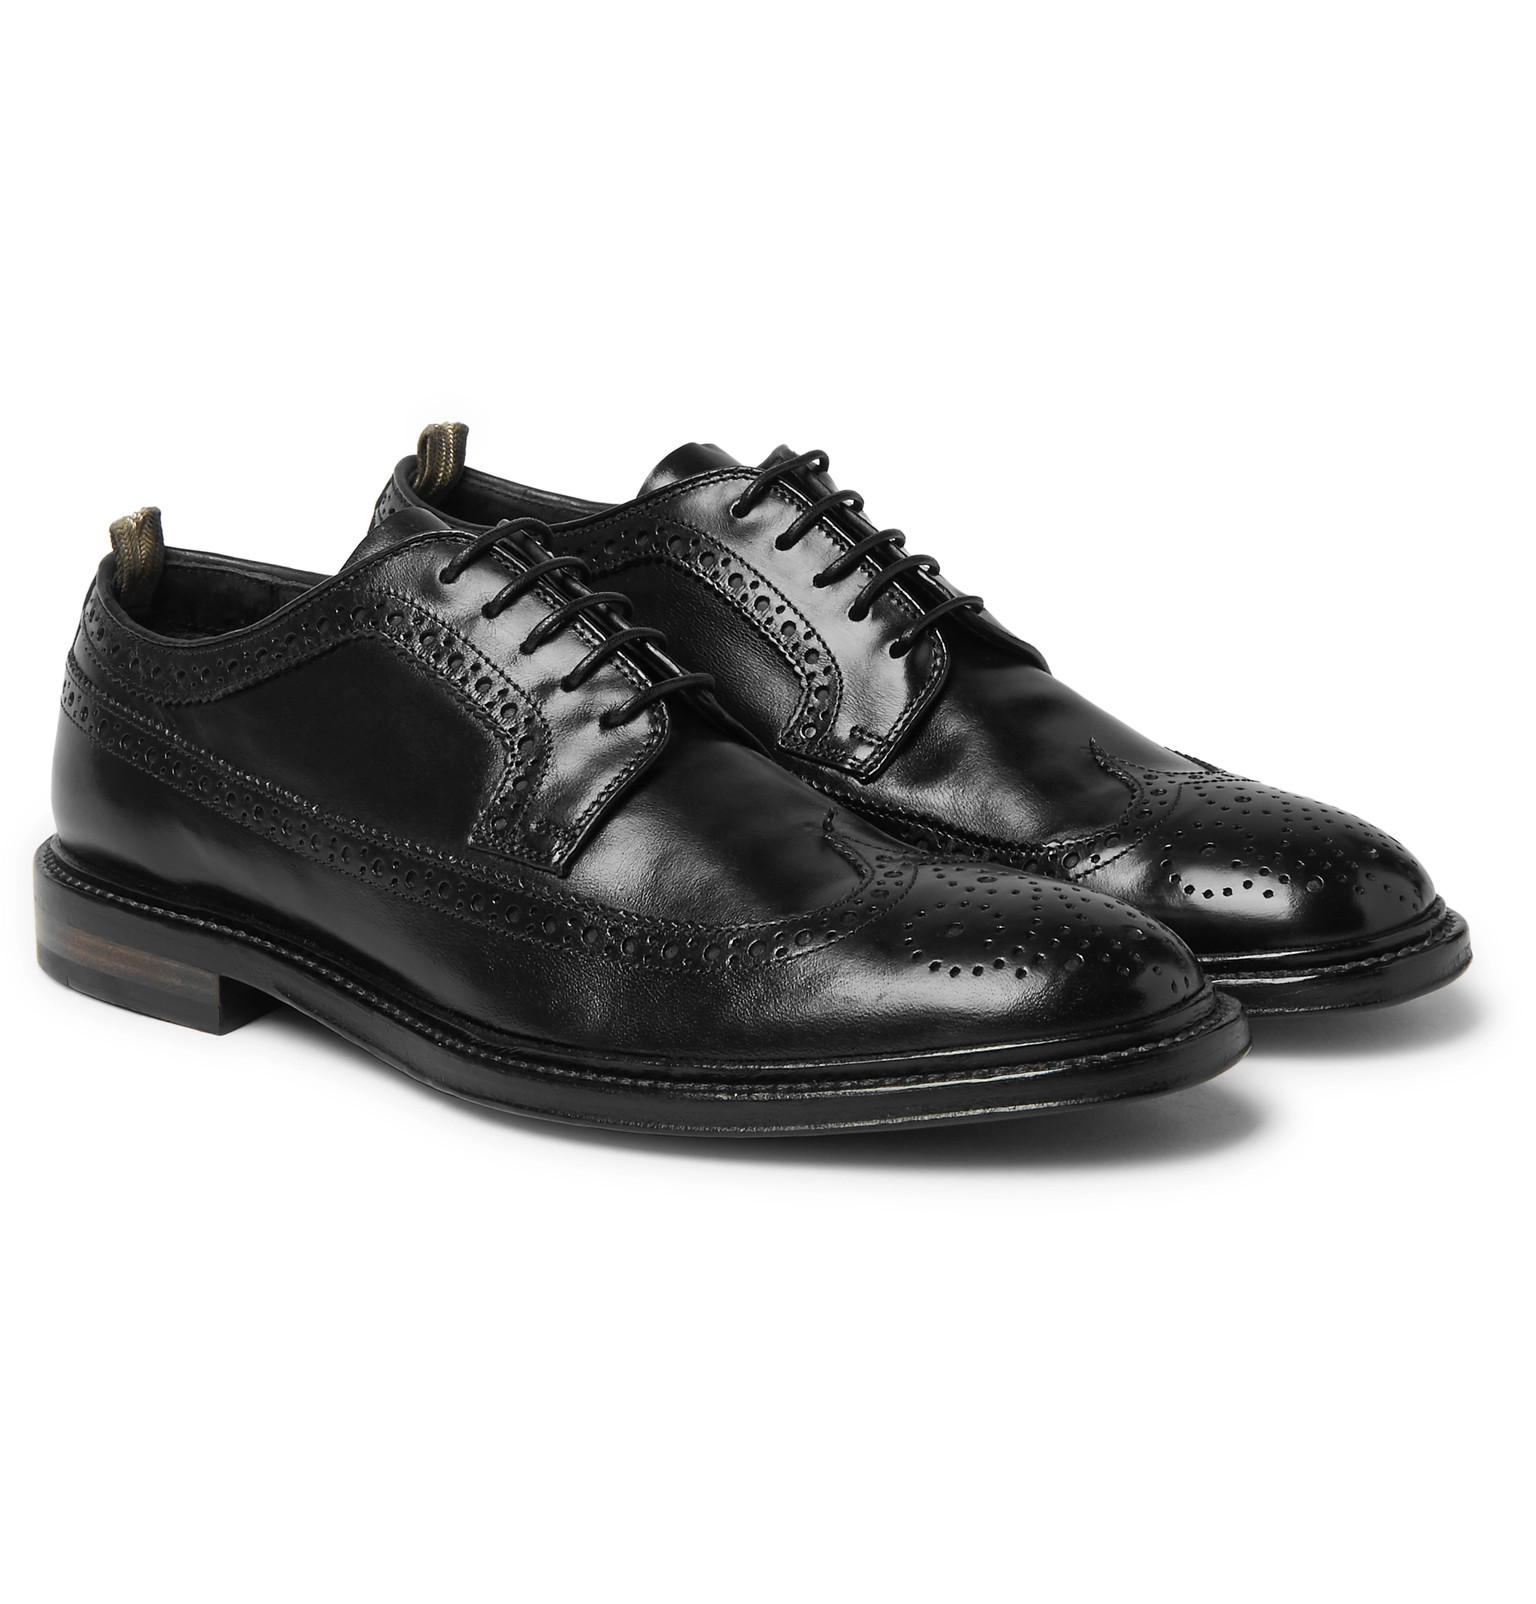 Cornell Polished-leather Wingtip Brogues Officine Creative yDiIk8